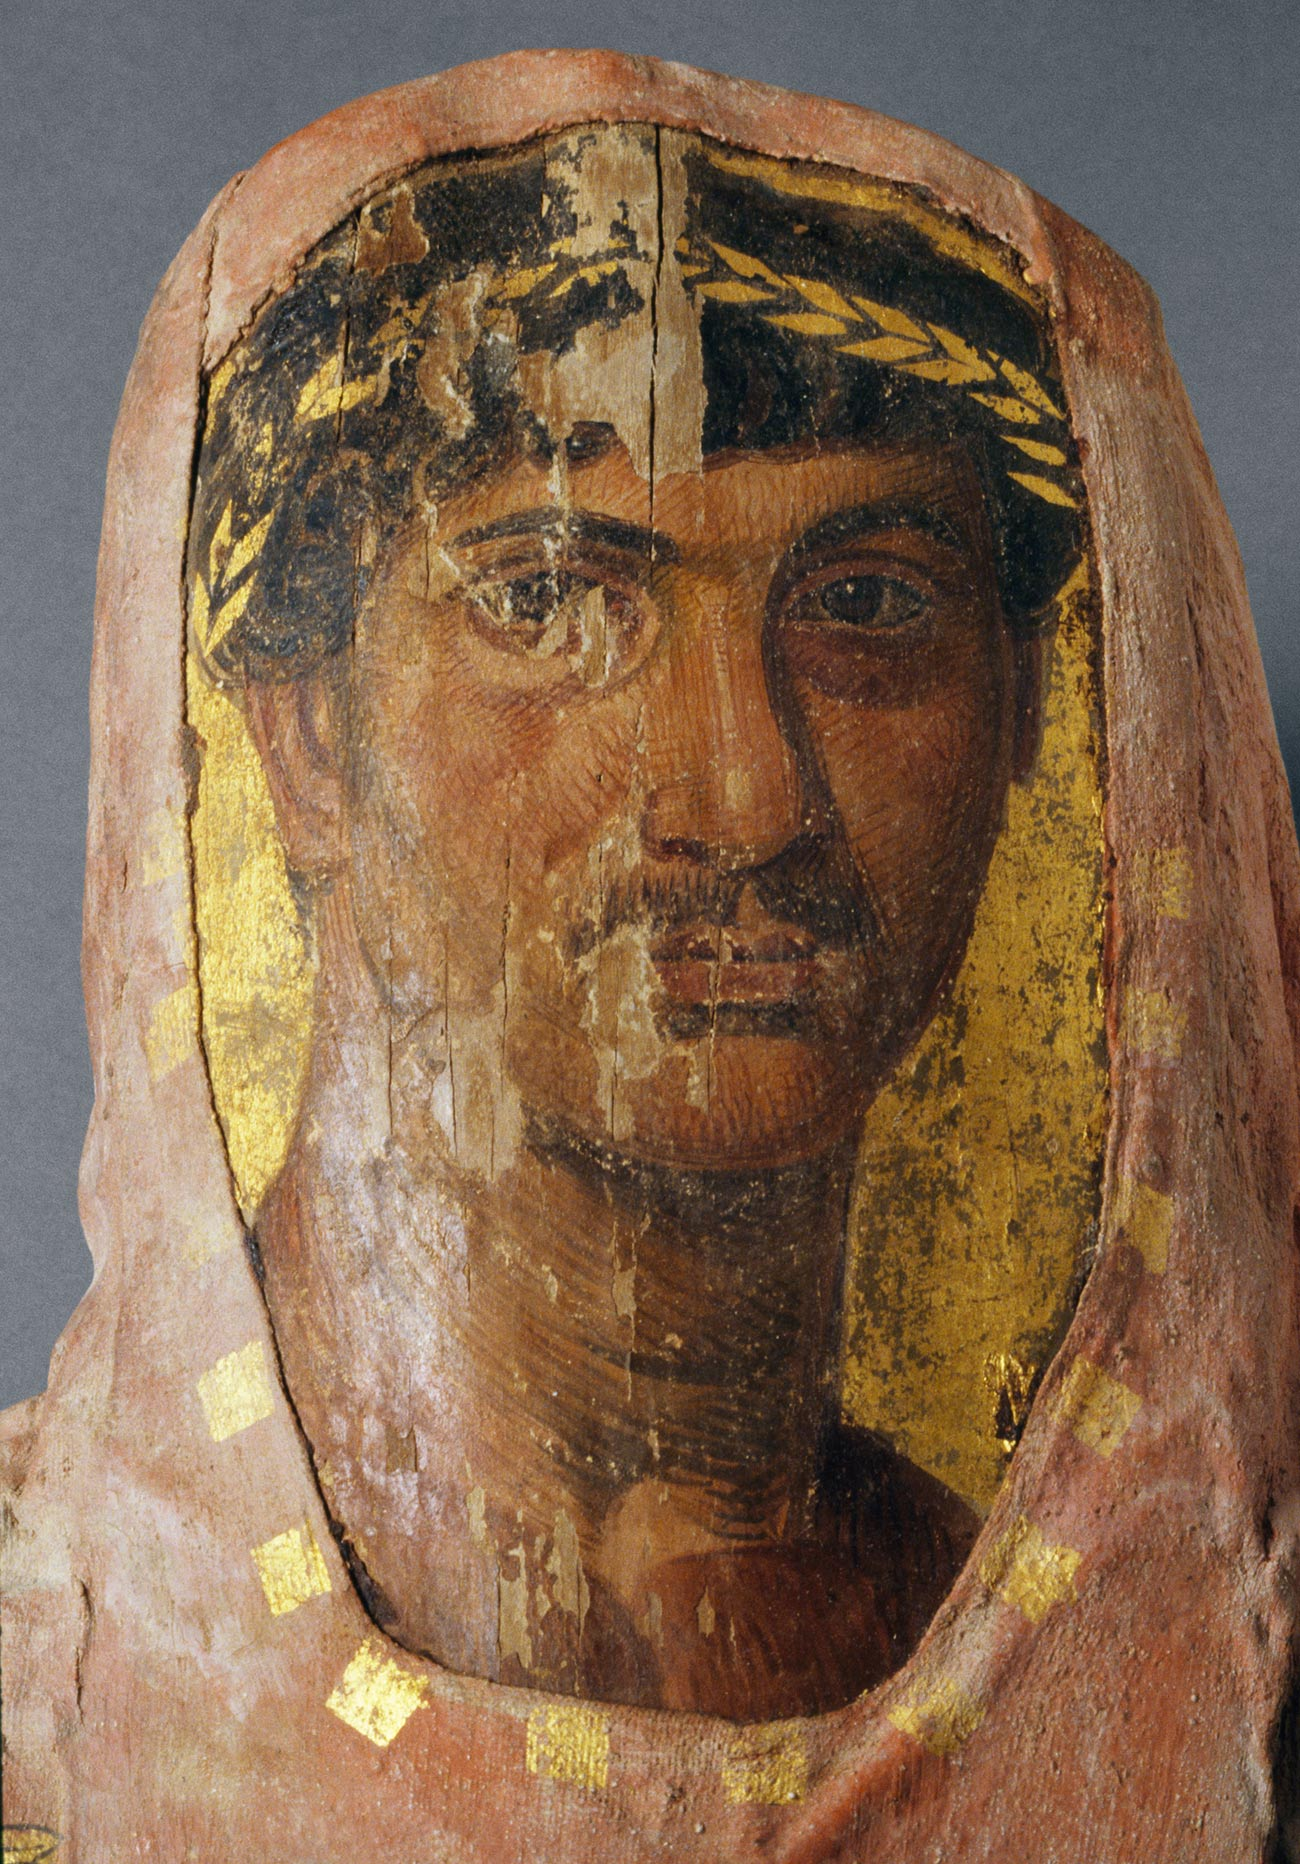 Close-up of encaustic-on-wood portrait of an ancient Egyptian with dark hair and a gold headband